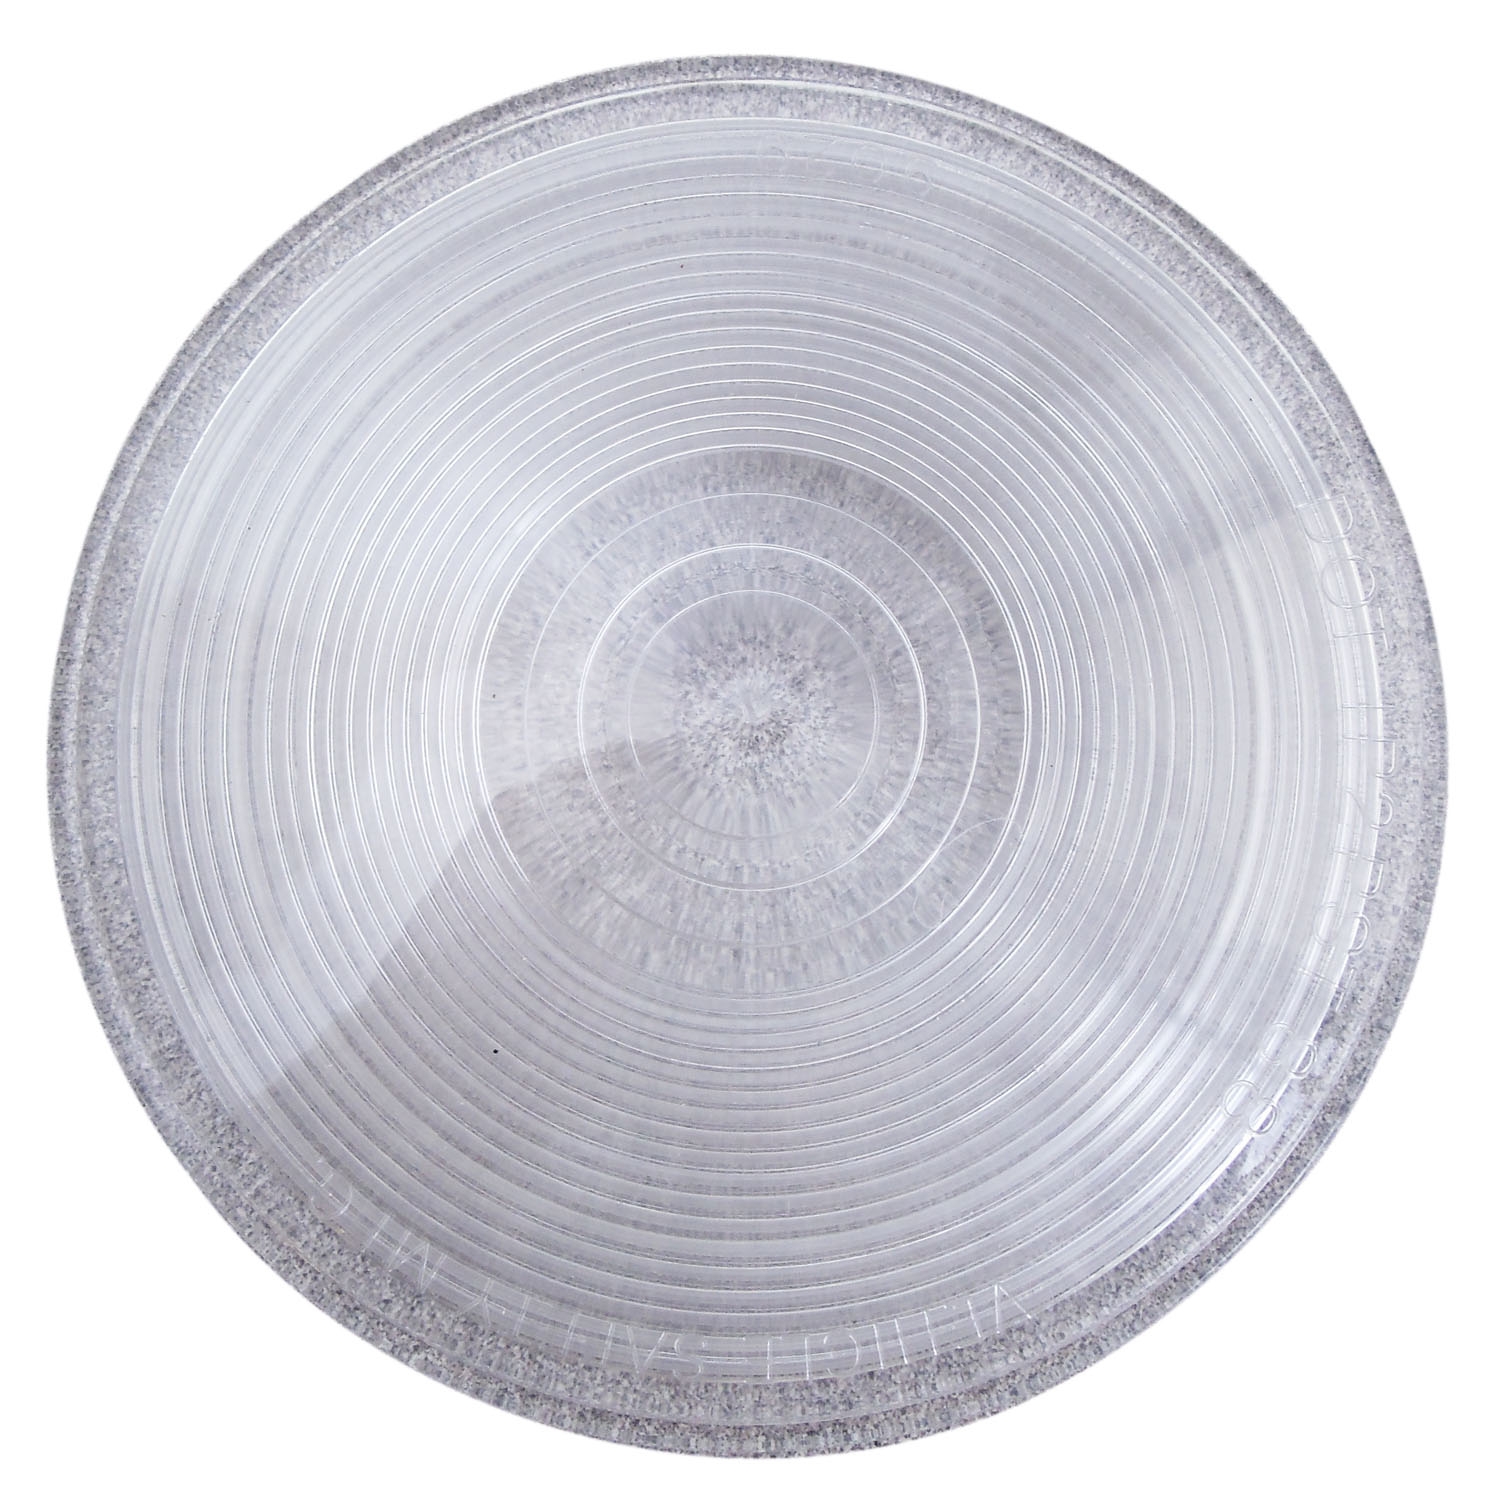 """4-1/4"""" ROUND CLEAR REPLACEMENT LENS COVER 9029 DOT IP2PST88 - BULK"""